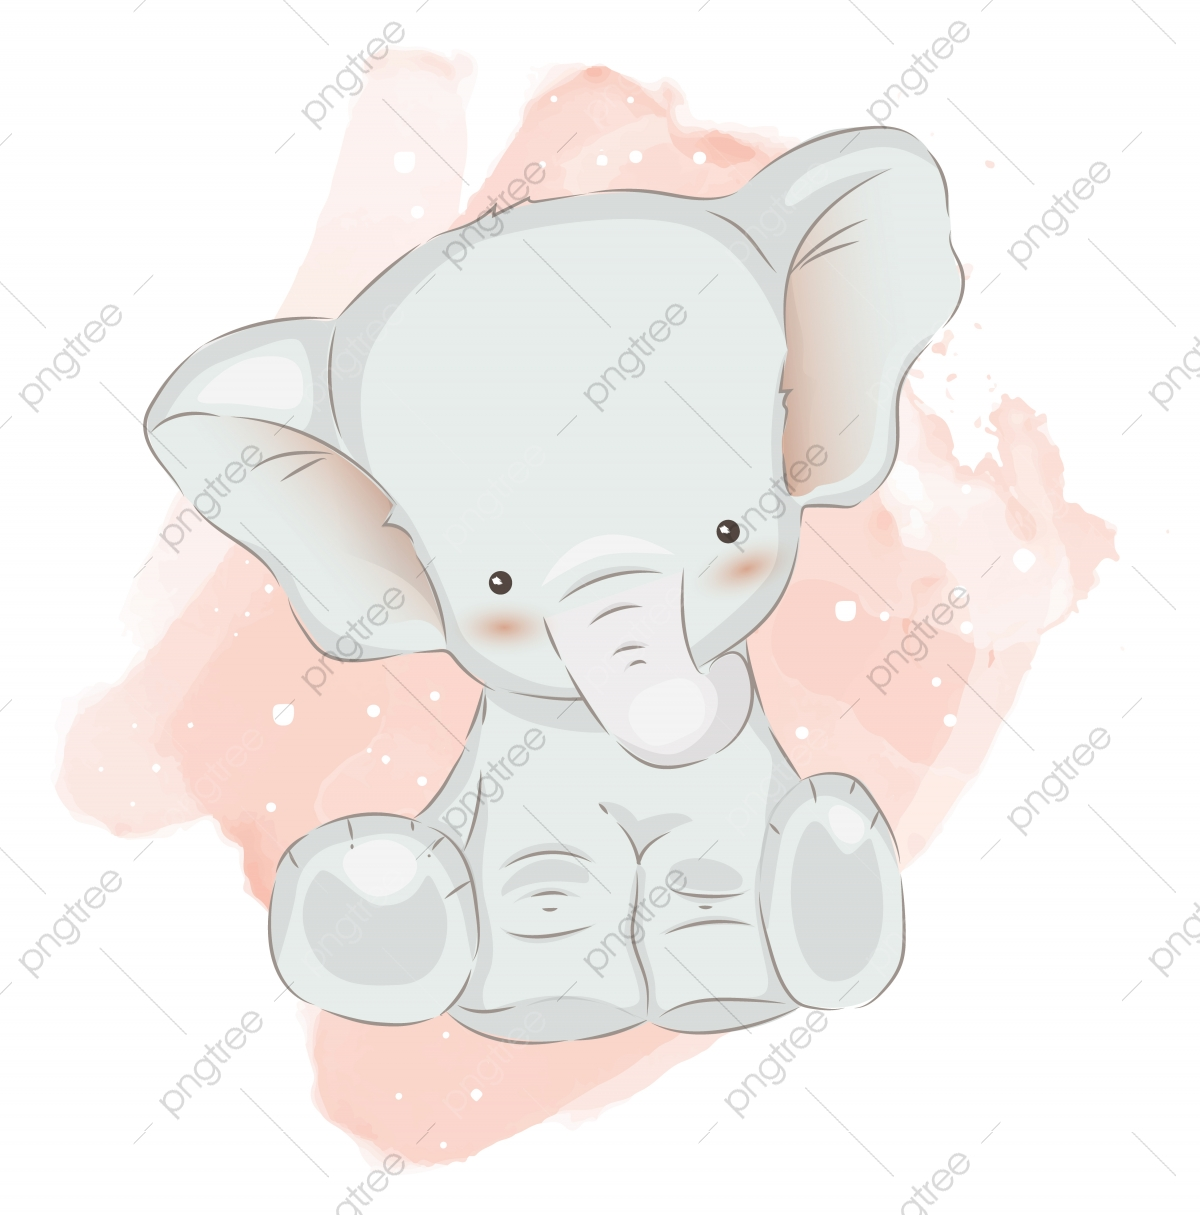 Baby Elephant Png Images Vector And Psd Files Free Download On Pngtree Grey baby elephant poster, african elephant indian elephant illustrator illustration, watercolor elephant transparent background png clipart. https pngtree com freepng cute baby elephant illustration for decoration 5100336 html